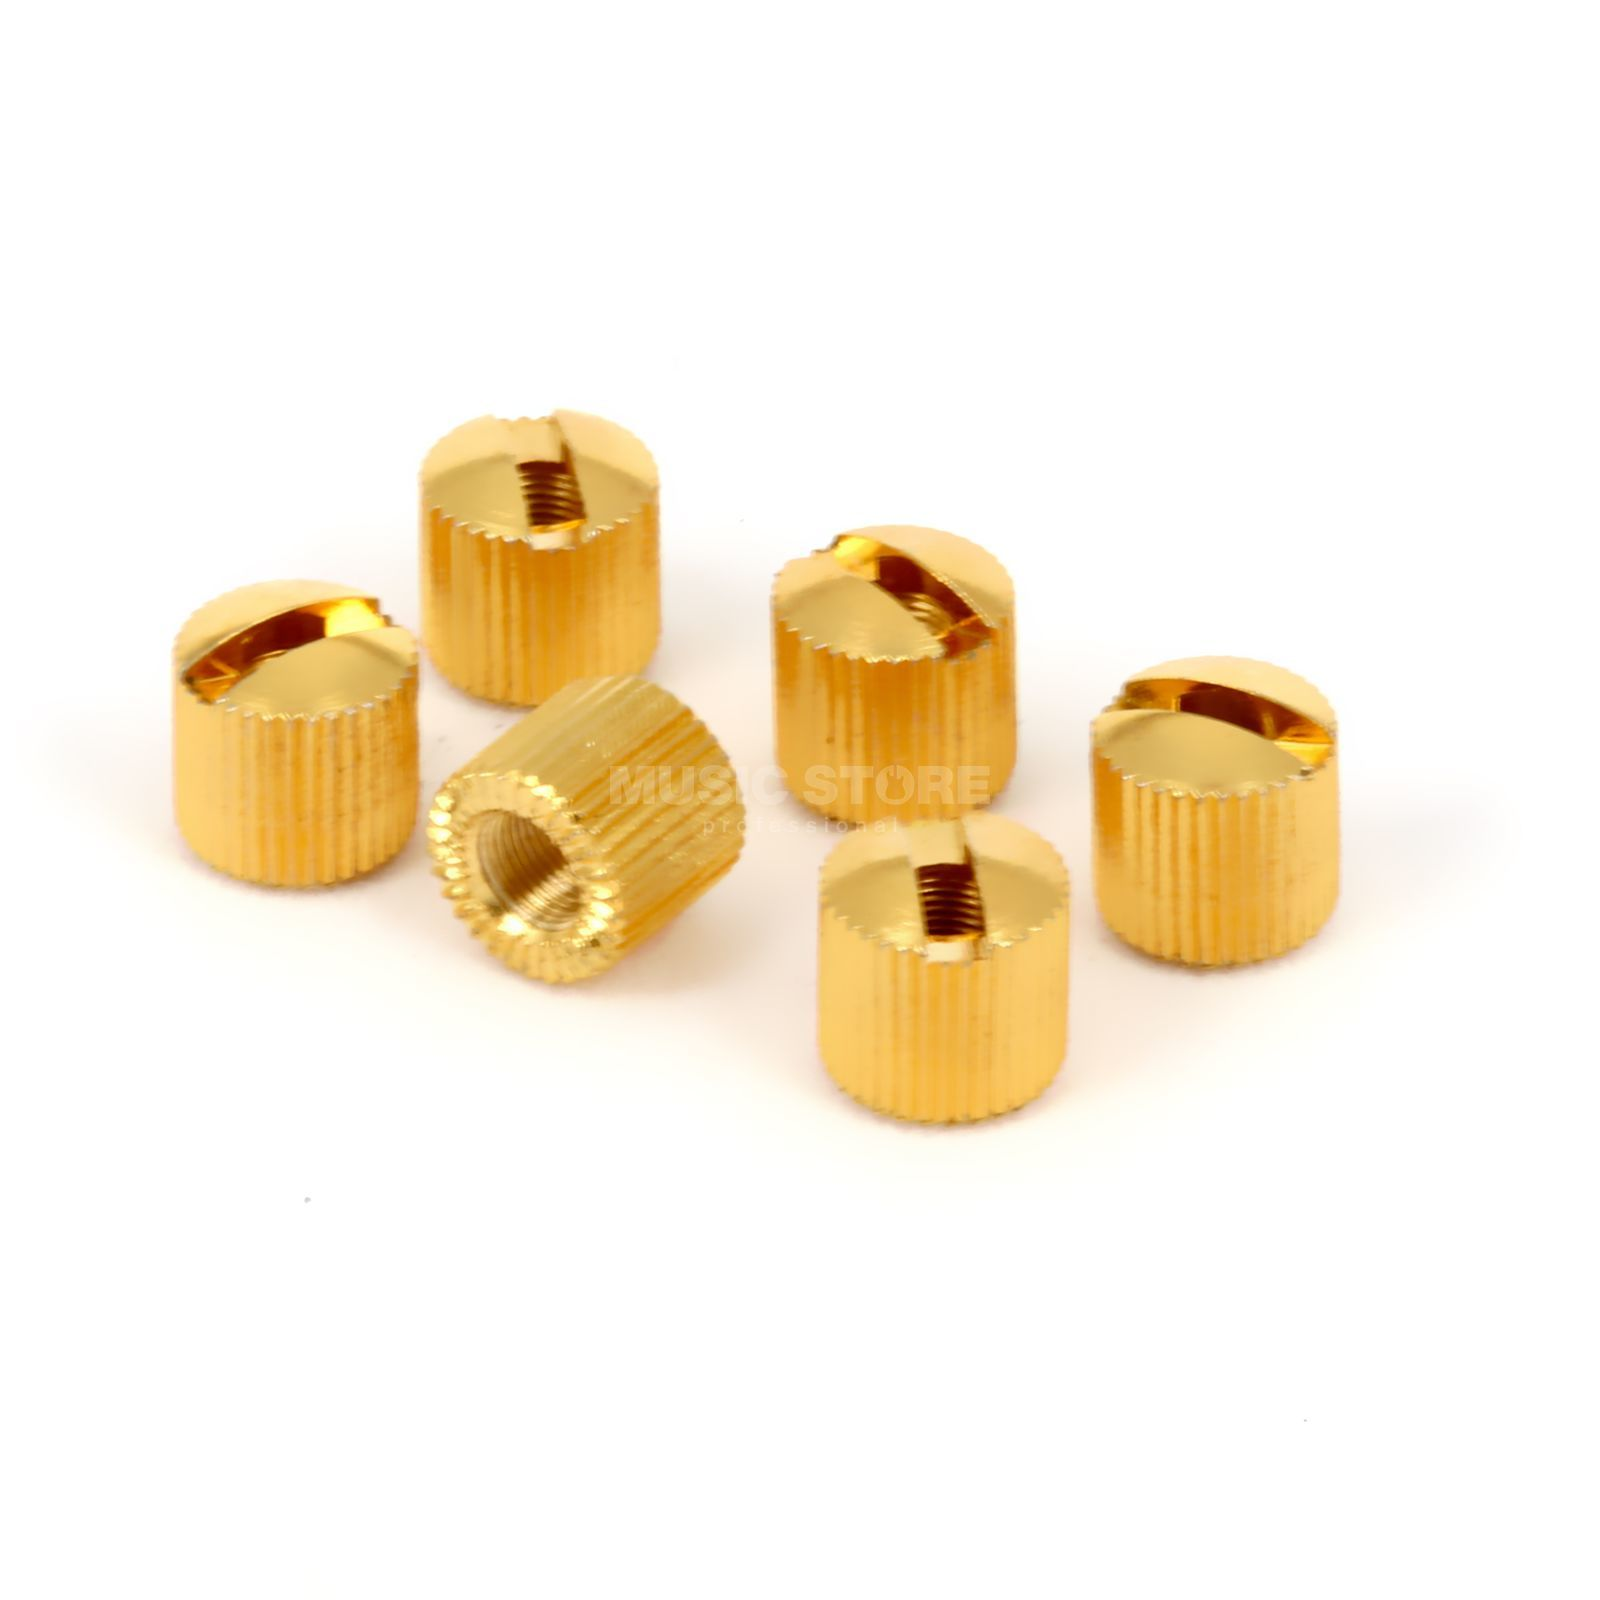 Tronical GmbH Lock Nuts Gold Produktbild